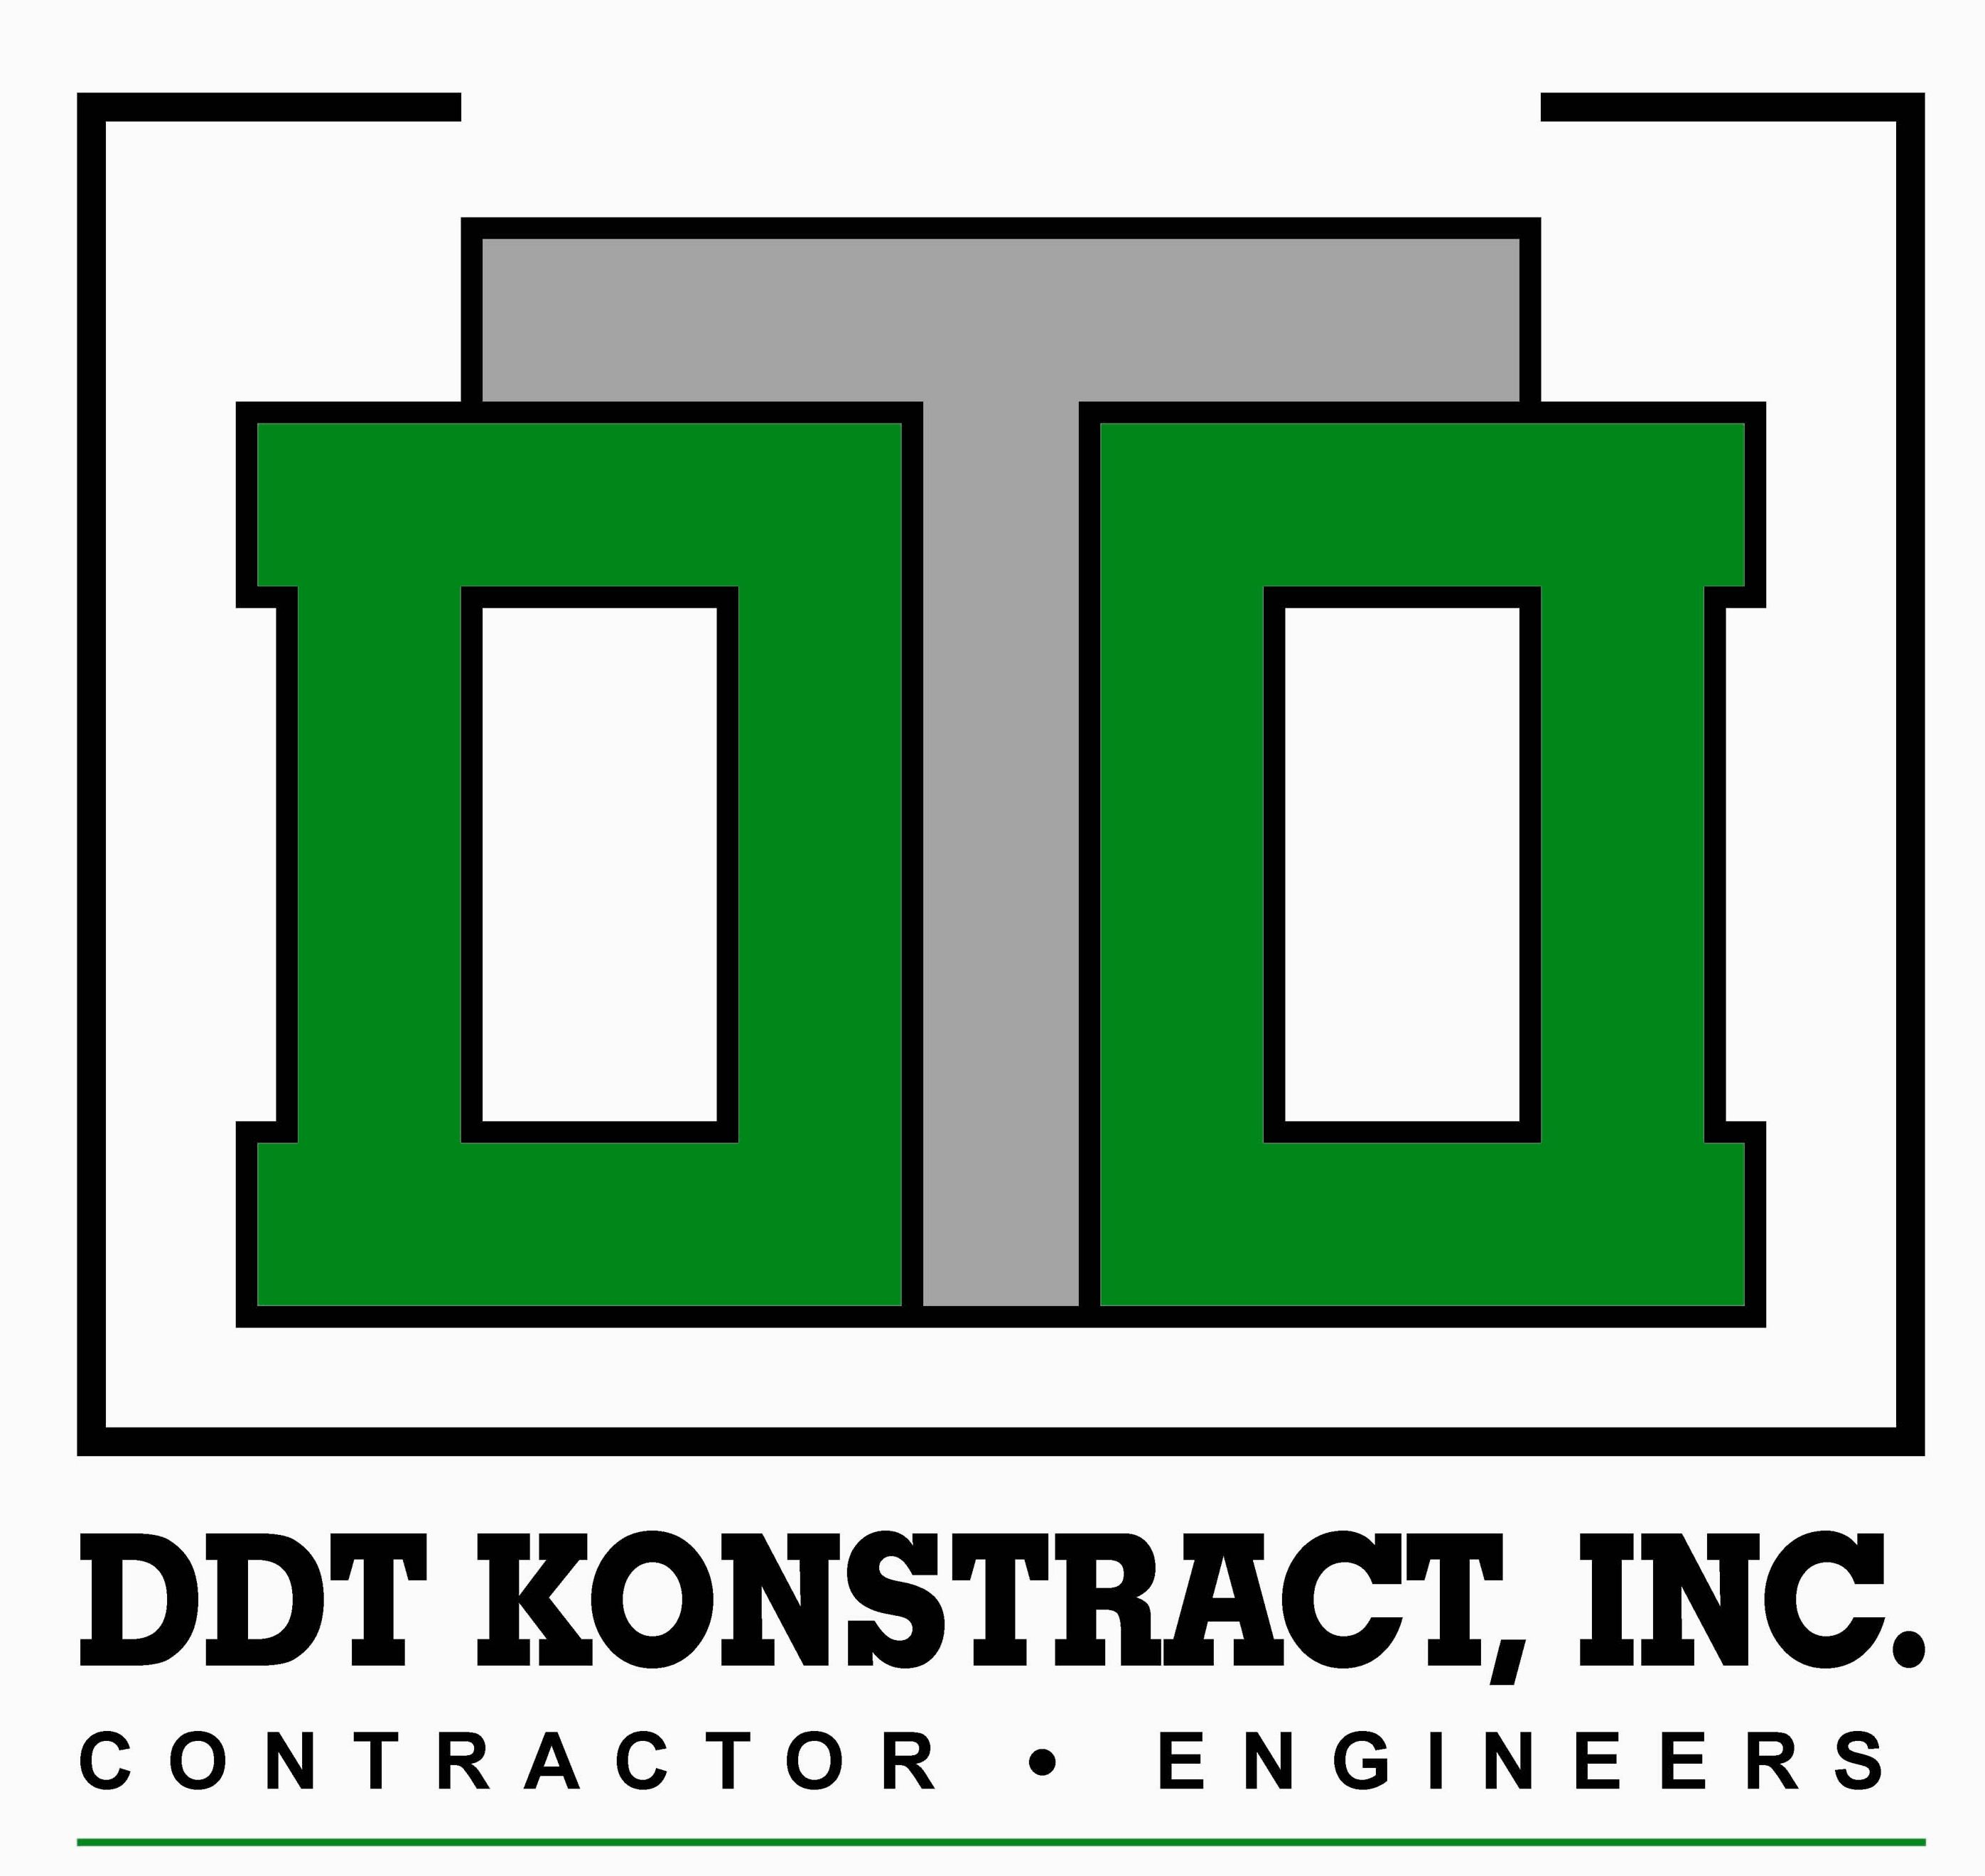 DDT Konstract Inc.